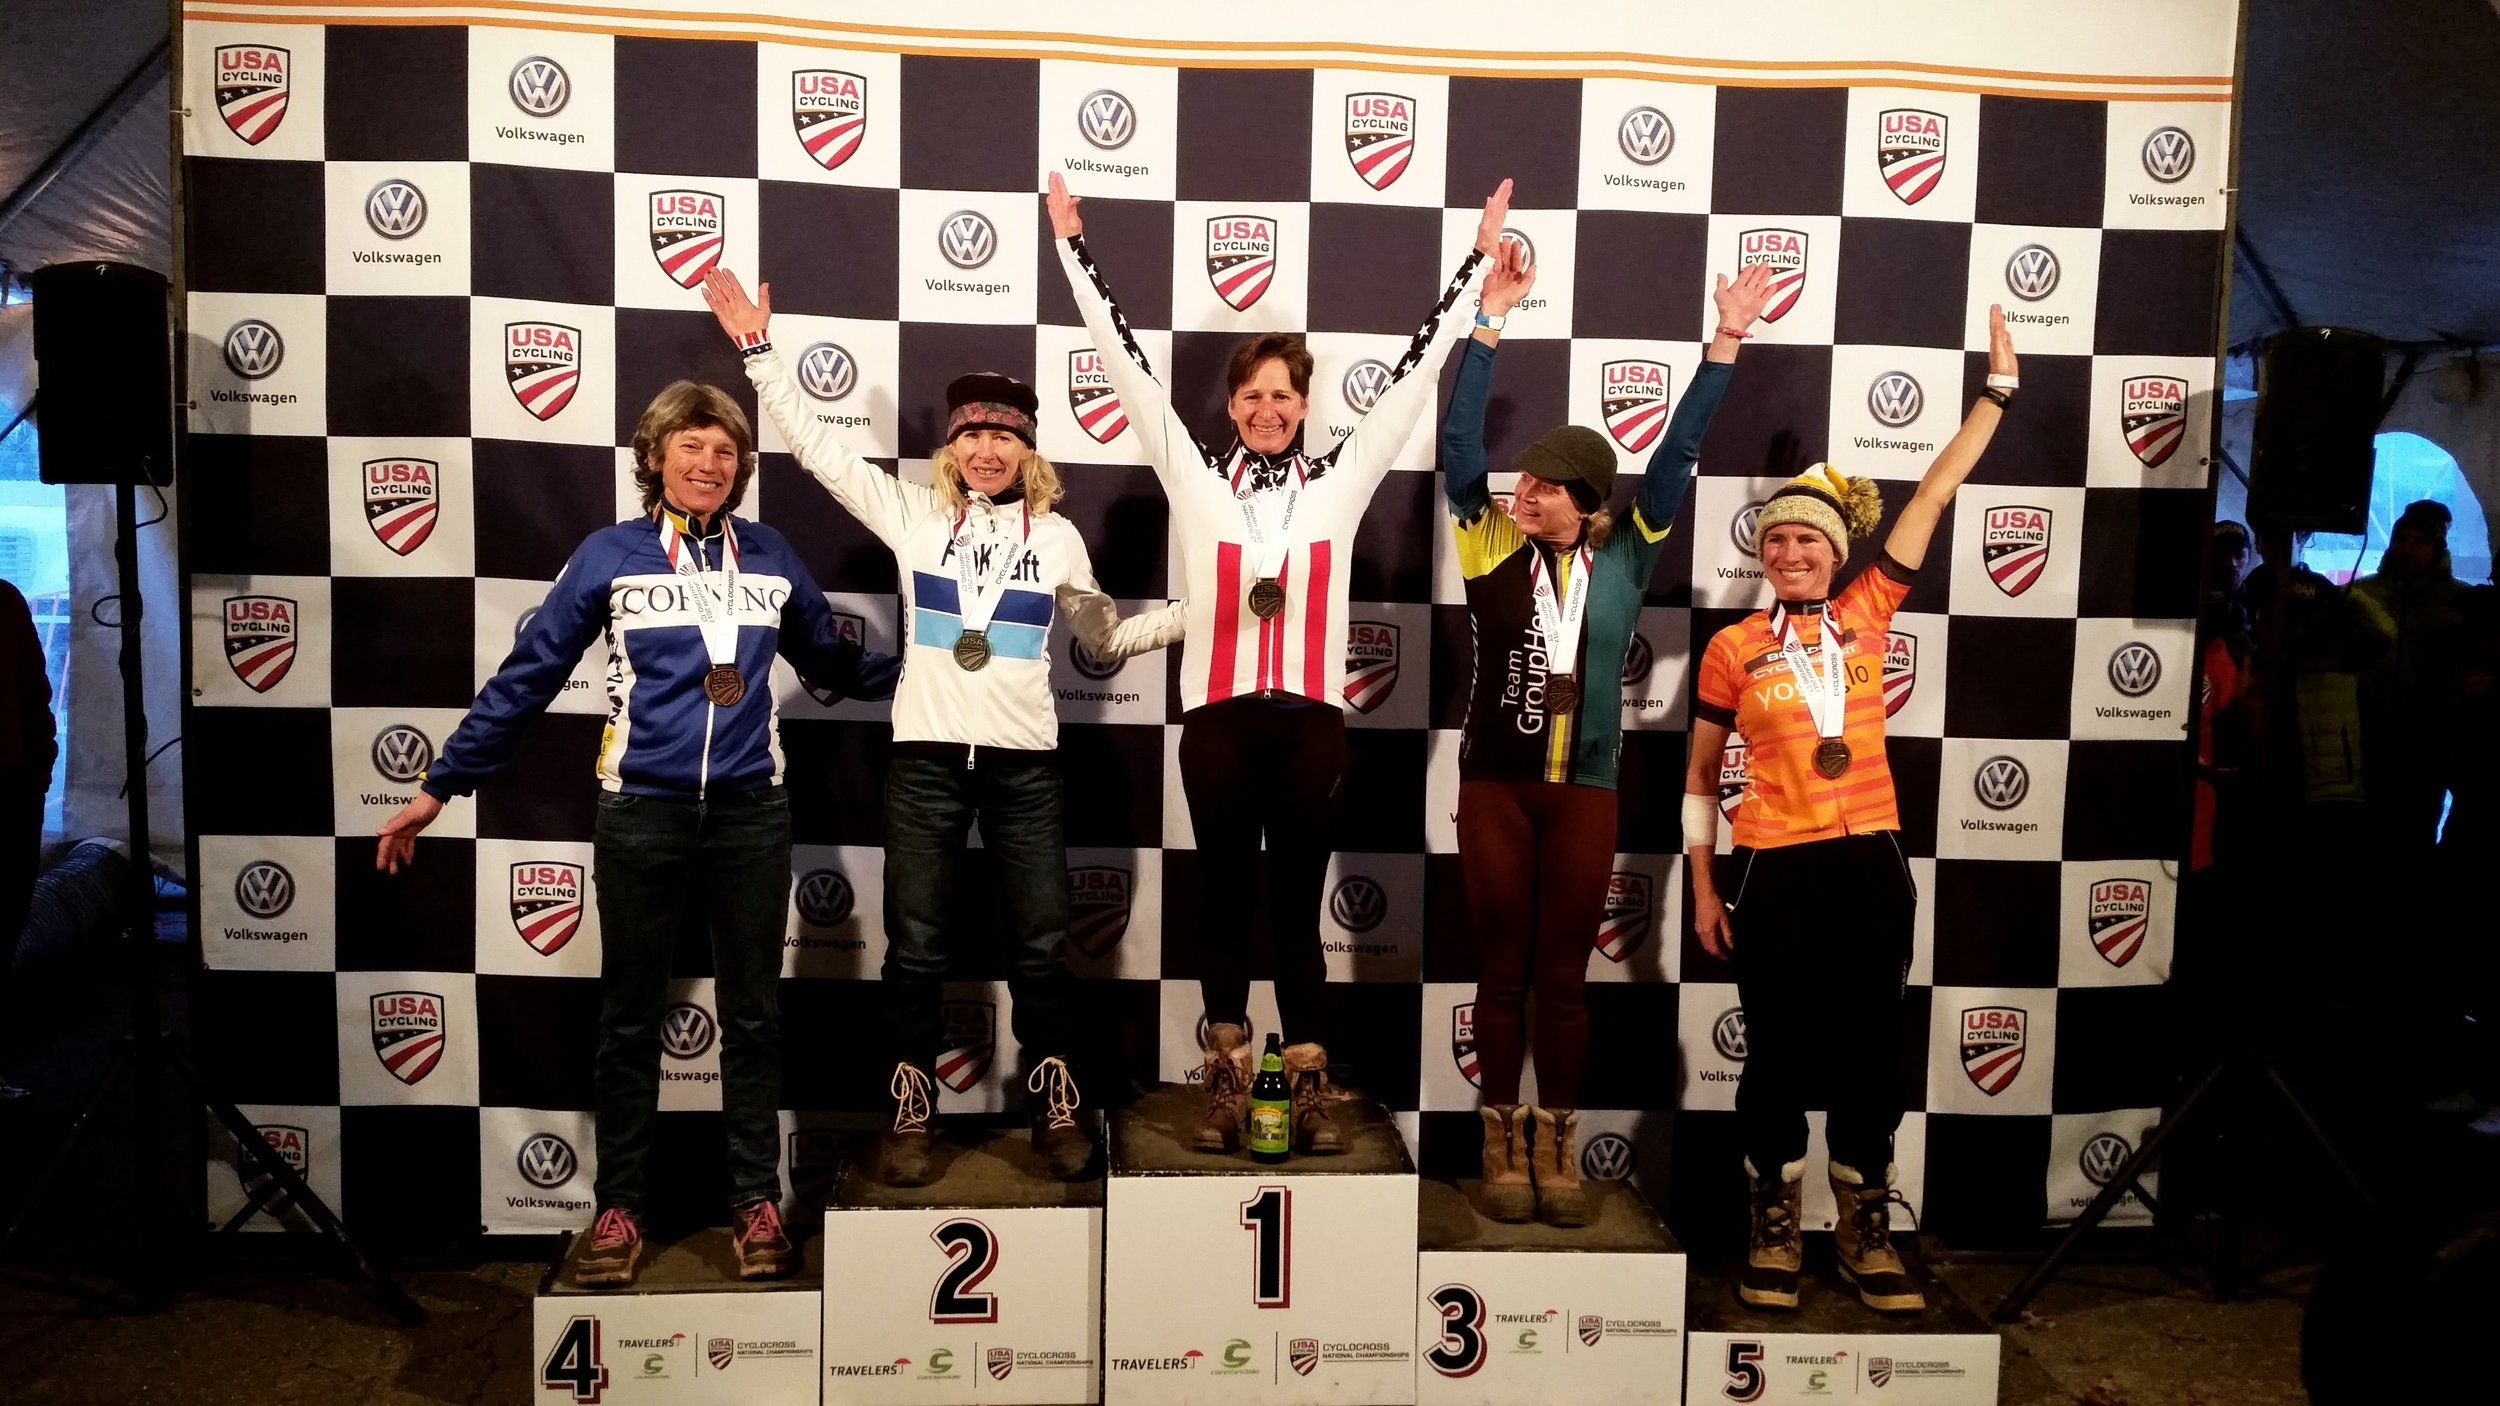 Kim Chance is a National Champ!